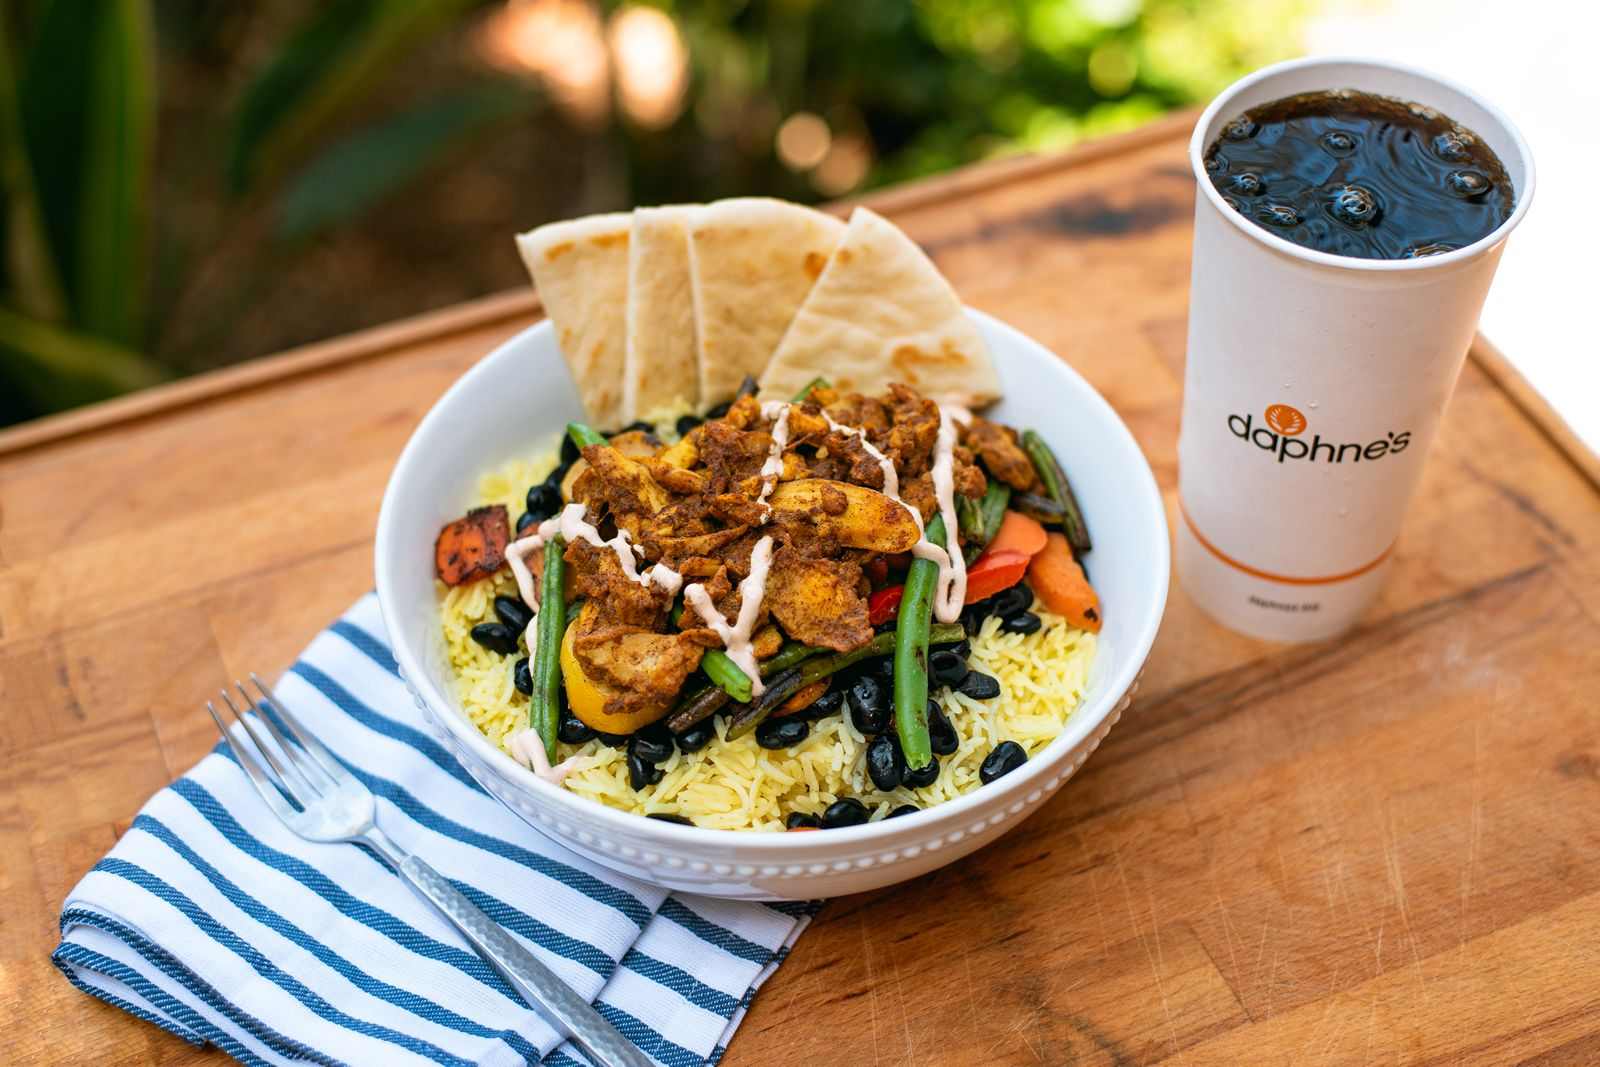 Daphne's has introduced two limited-time bowls that cater to vegan and protein-focused diets at all locations across California: the vegan-friendly Power Bowl and nutrient-dense Shawarma Bowl.